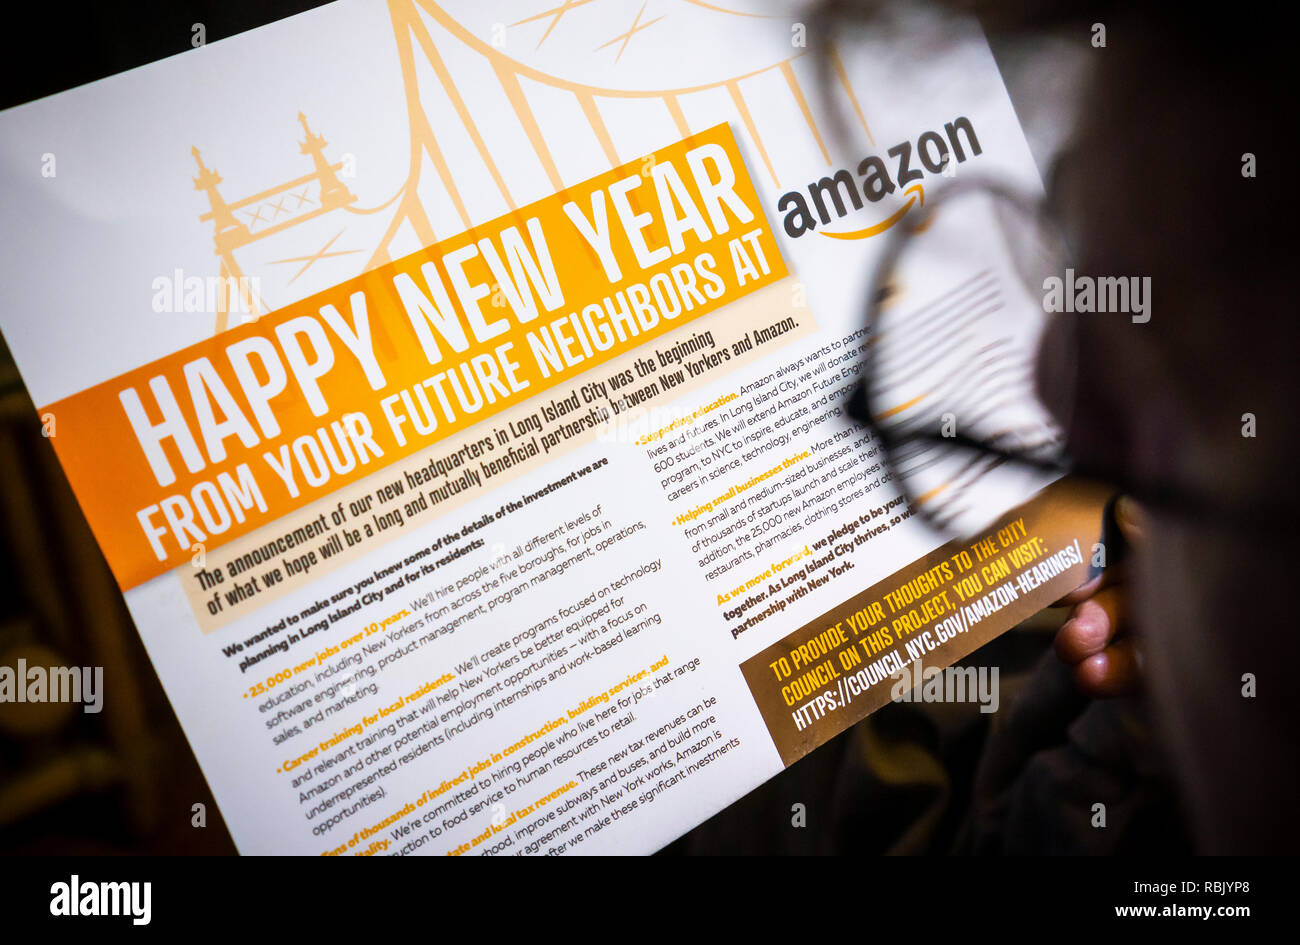 A woman in New York looks at a mailing she received from Amazon on Tuesday, January 8, 2019 touting the benefits of 'Amazon is investing in Long Island City' related to their building their 'HQ 2' in the Queens neighborhood. (© Richard B. Levine) - Stock Image